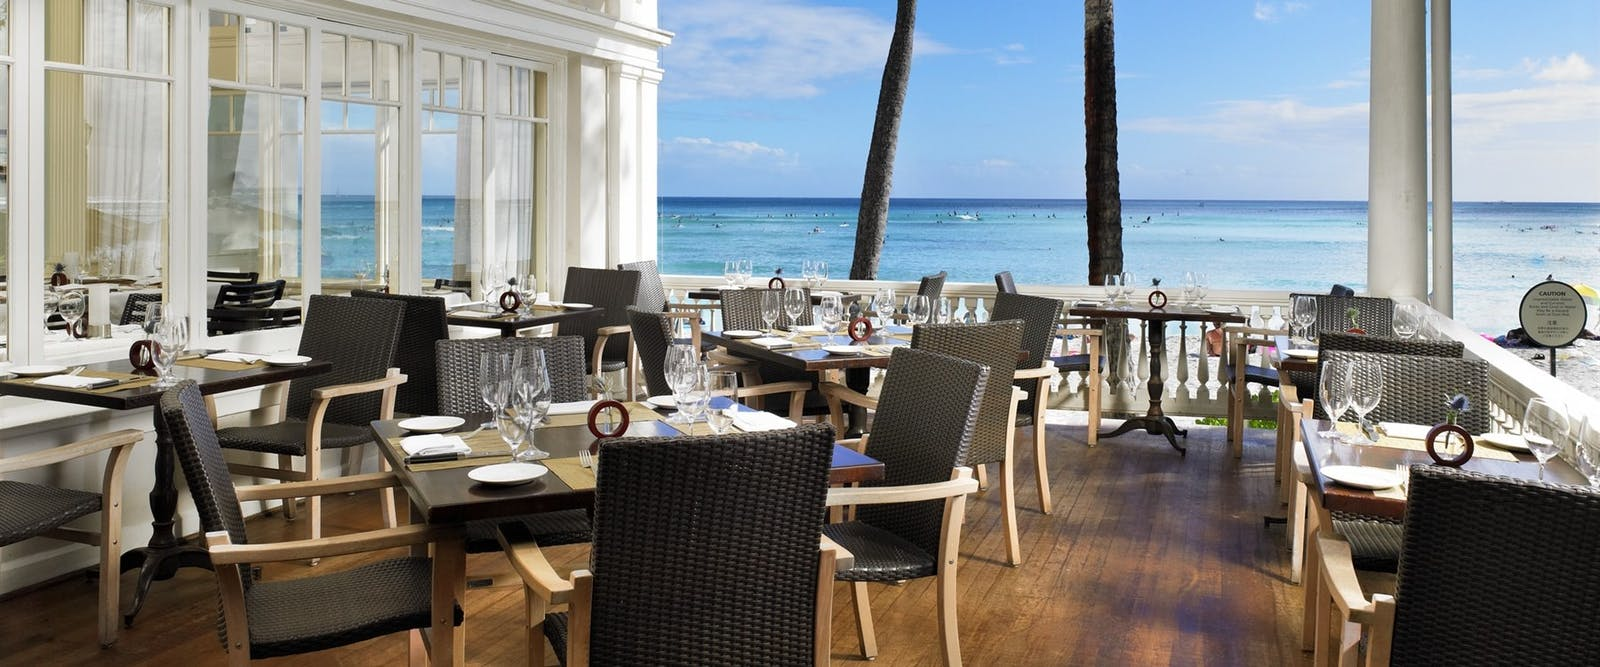 Beachhouse at Moana Surfrider, A Westin Resort